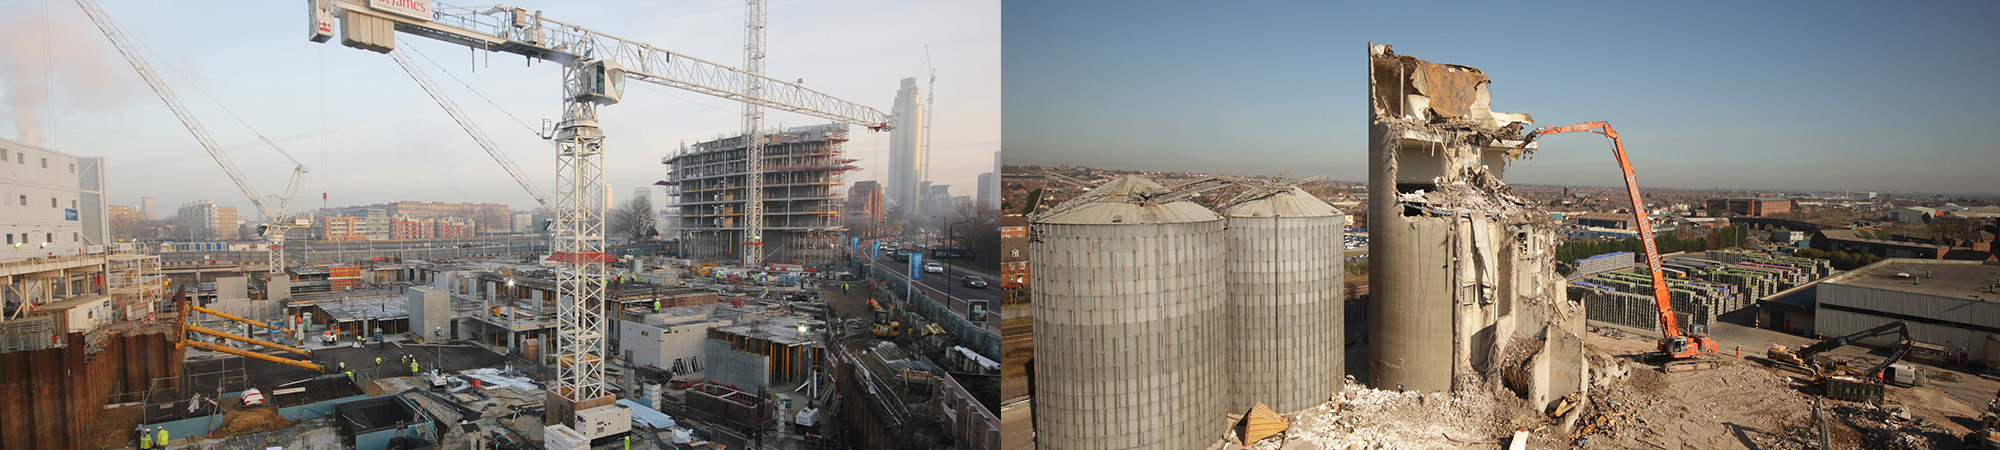 Construction and demolition projects